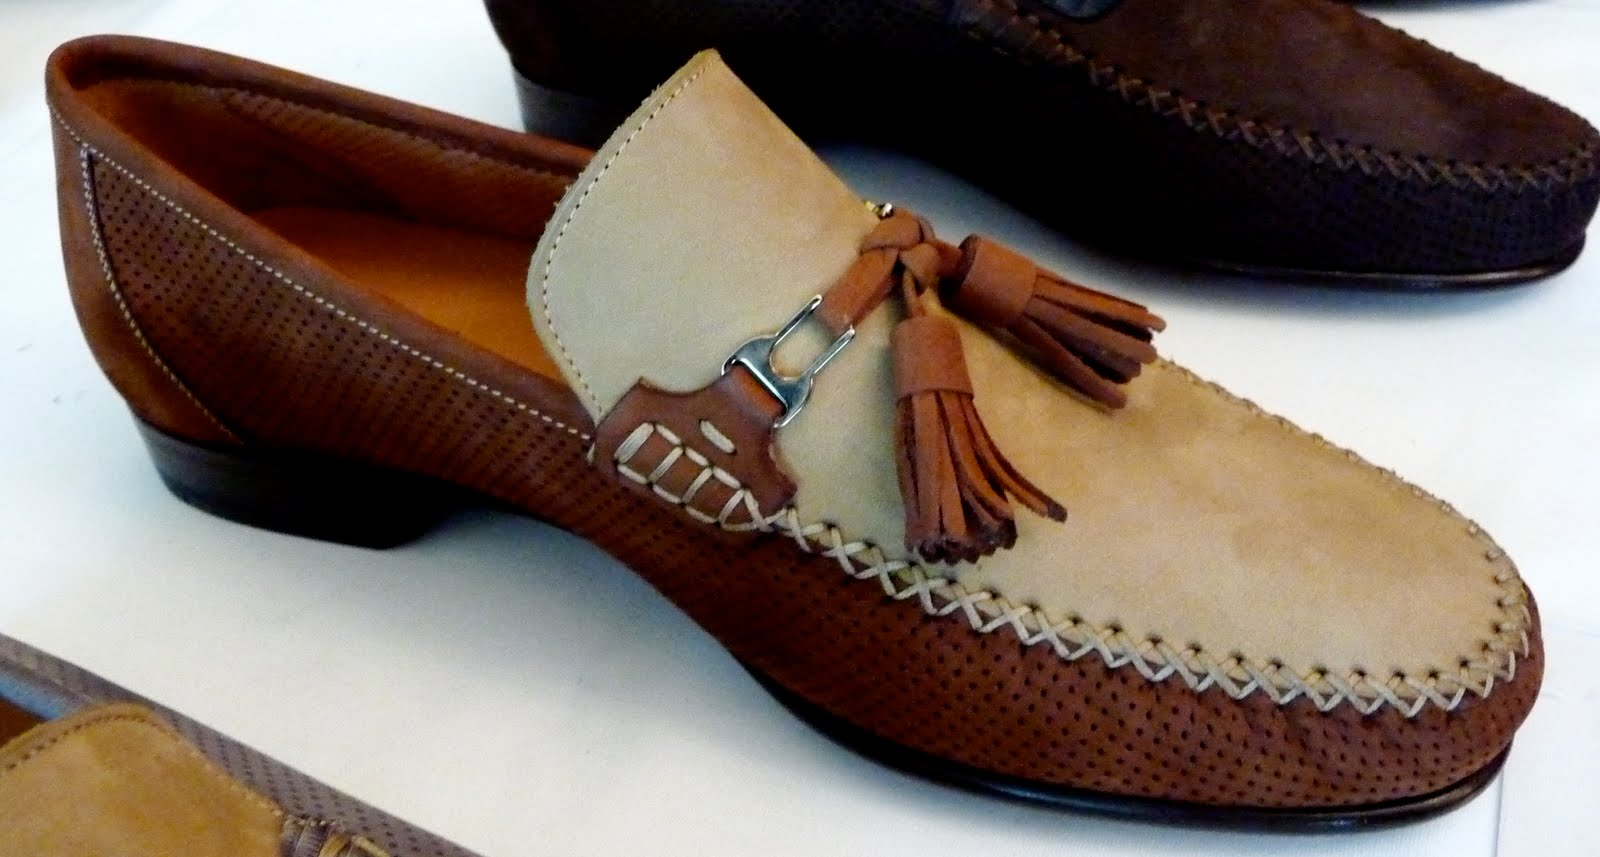 0102b99c30 MAGNANNI SHOES FOR MEN PRE-SPRING & SPRING 2011 COLLECTIONS